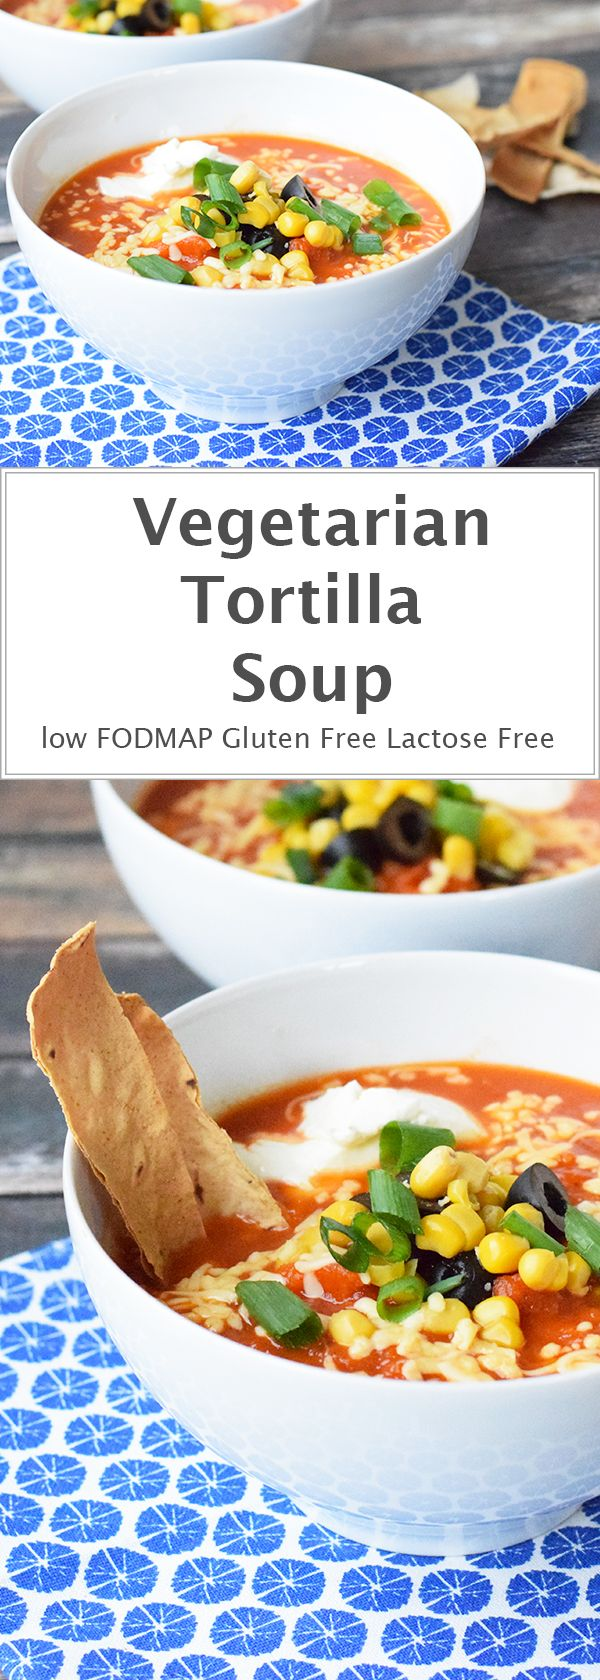 Hearty vegetarian tortilla soup with homemade tortilla chips. Low FODMAP, gluten-free and lactose-free.